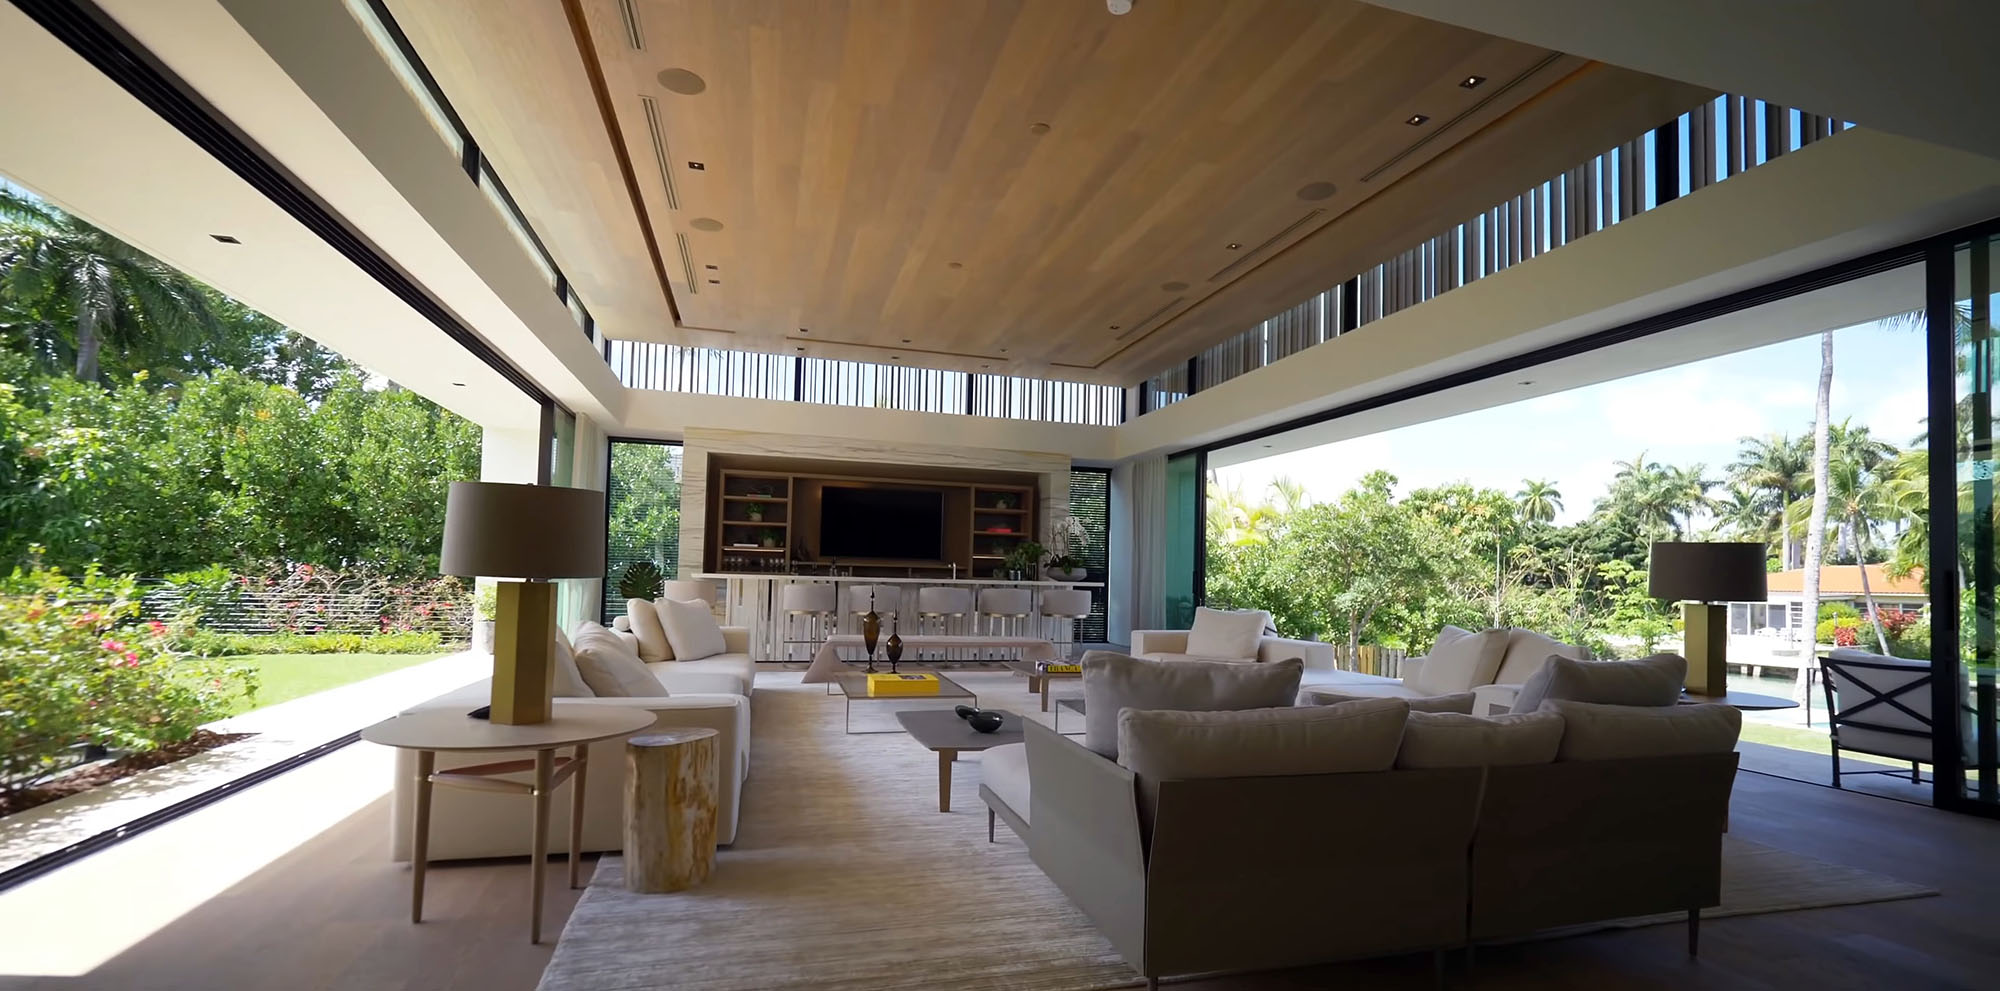 Modern home with an indoor outdoor design and walls of glass. Gliding glass doors.